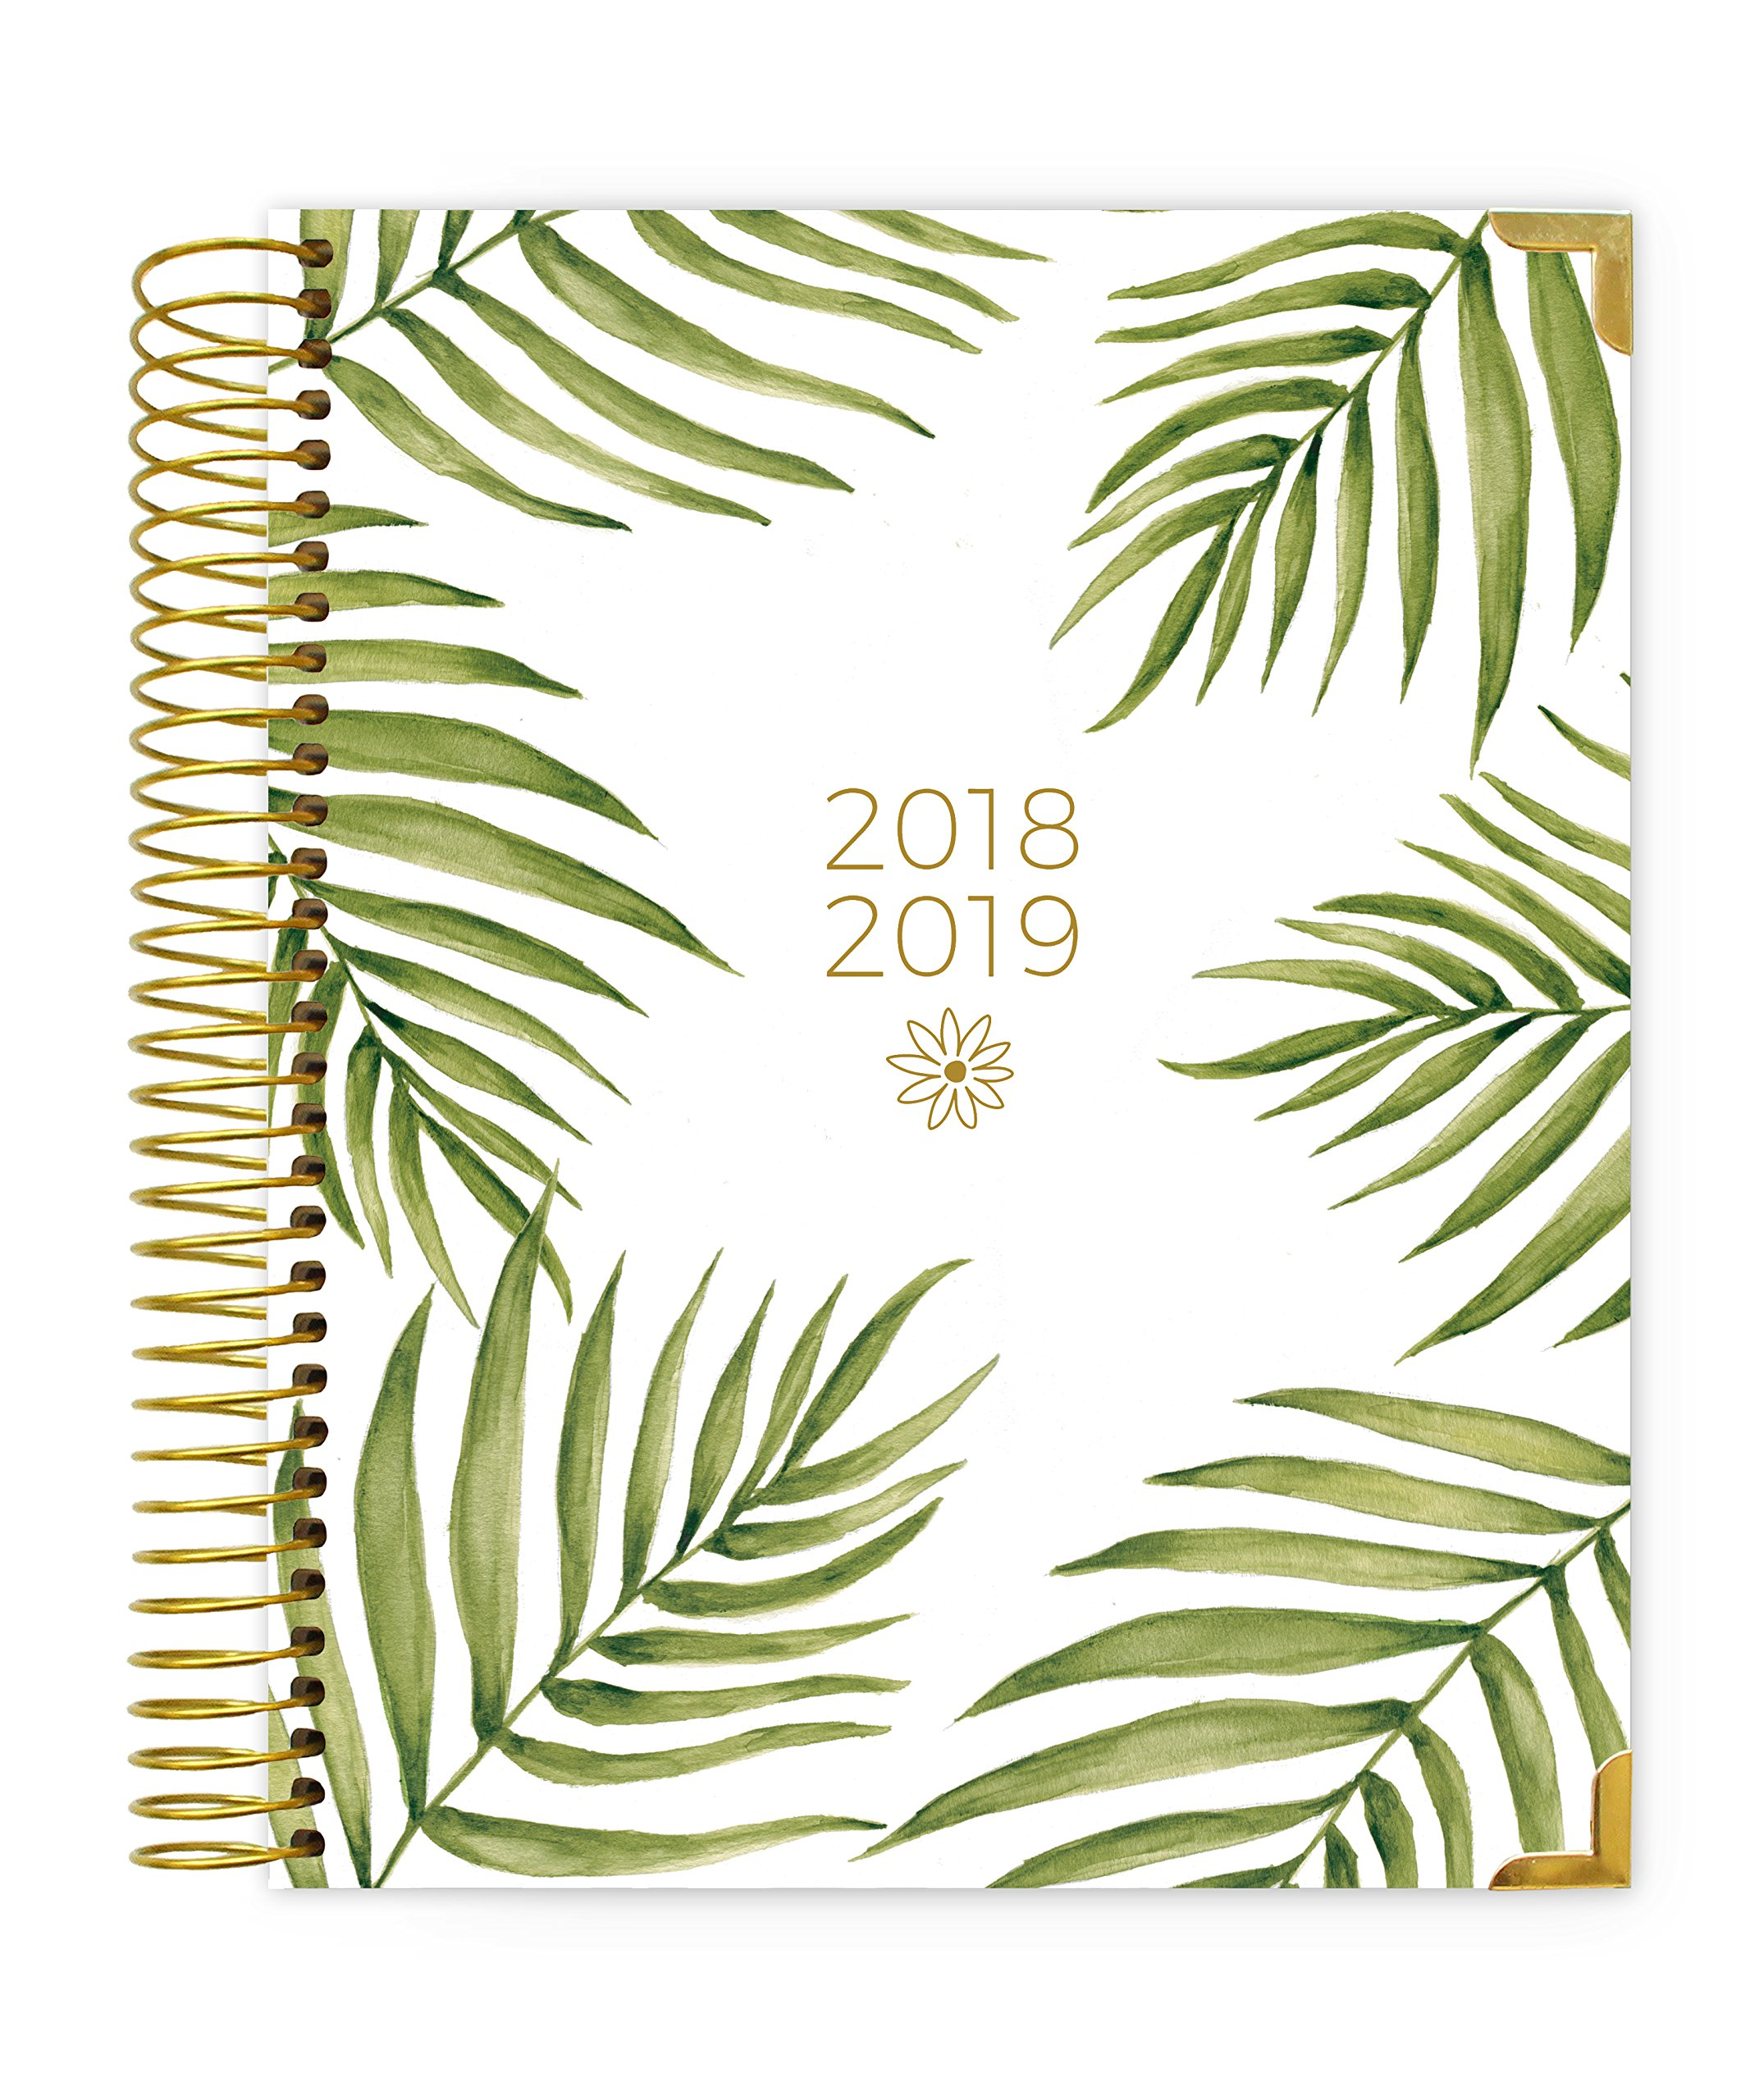 bloom daily planners 2018-2019 Academic Year Hard Cover Vision Planner - Monthly and Weekly Column View Day Planner - (August 2018 - July 2019) - 7.5'' x 9'' - Palm Leaves